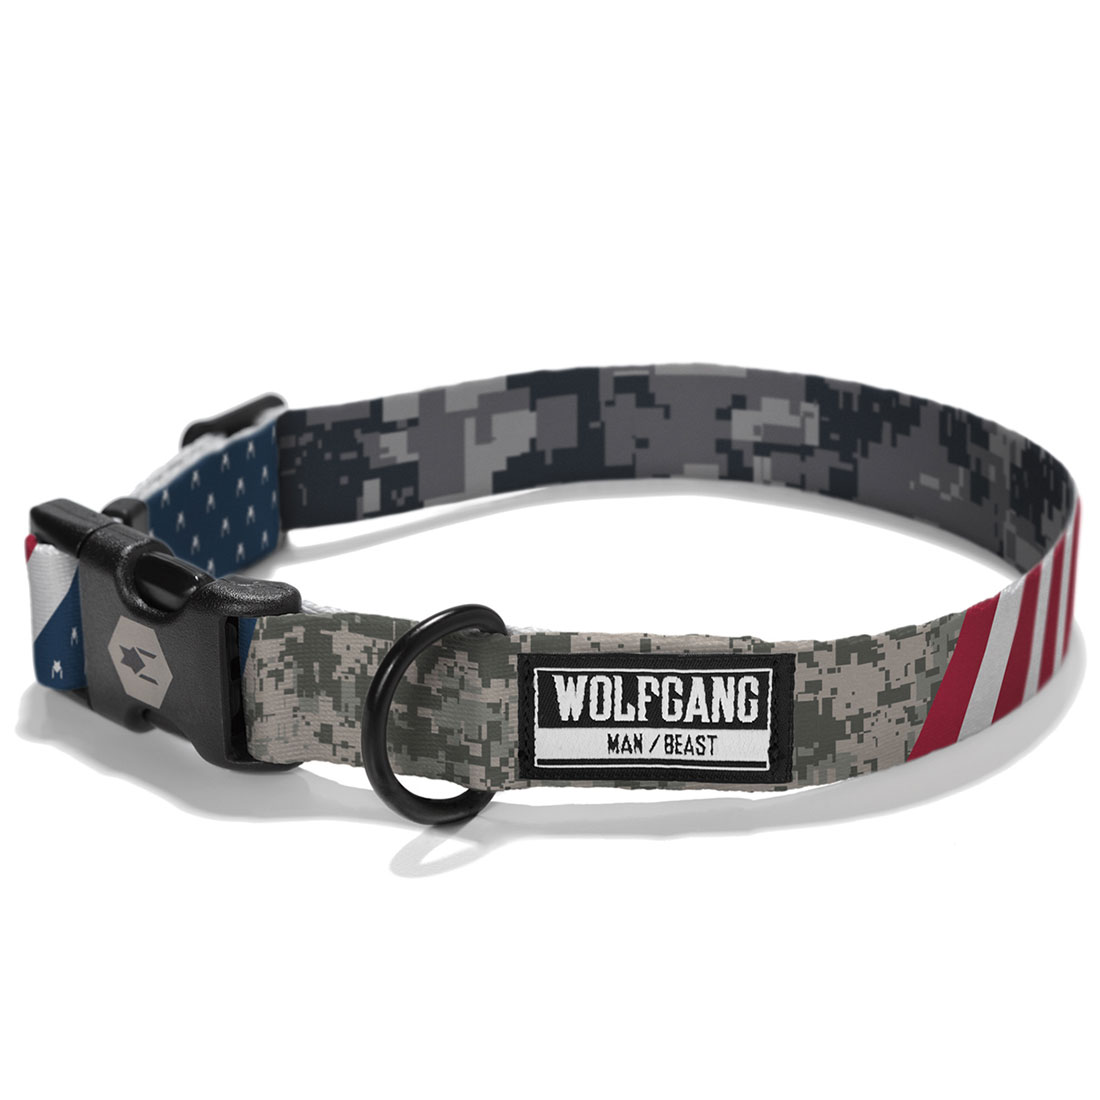 Wolfgang DigitalDog Dog Collar